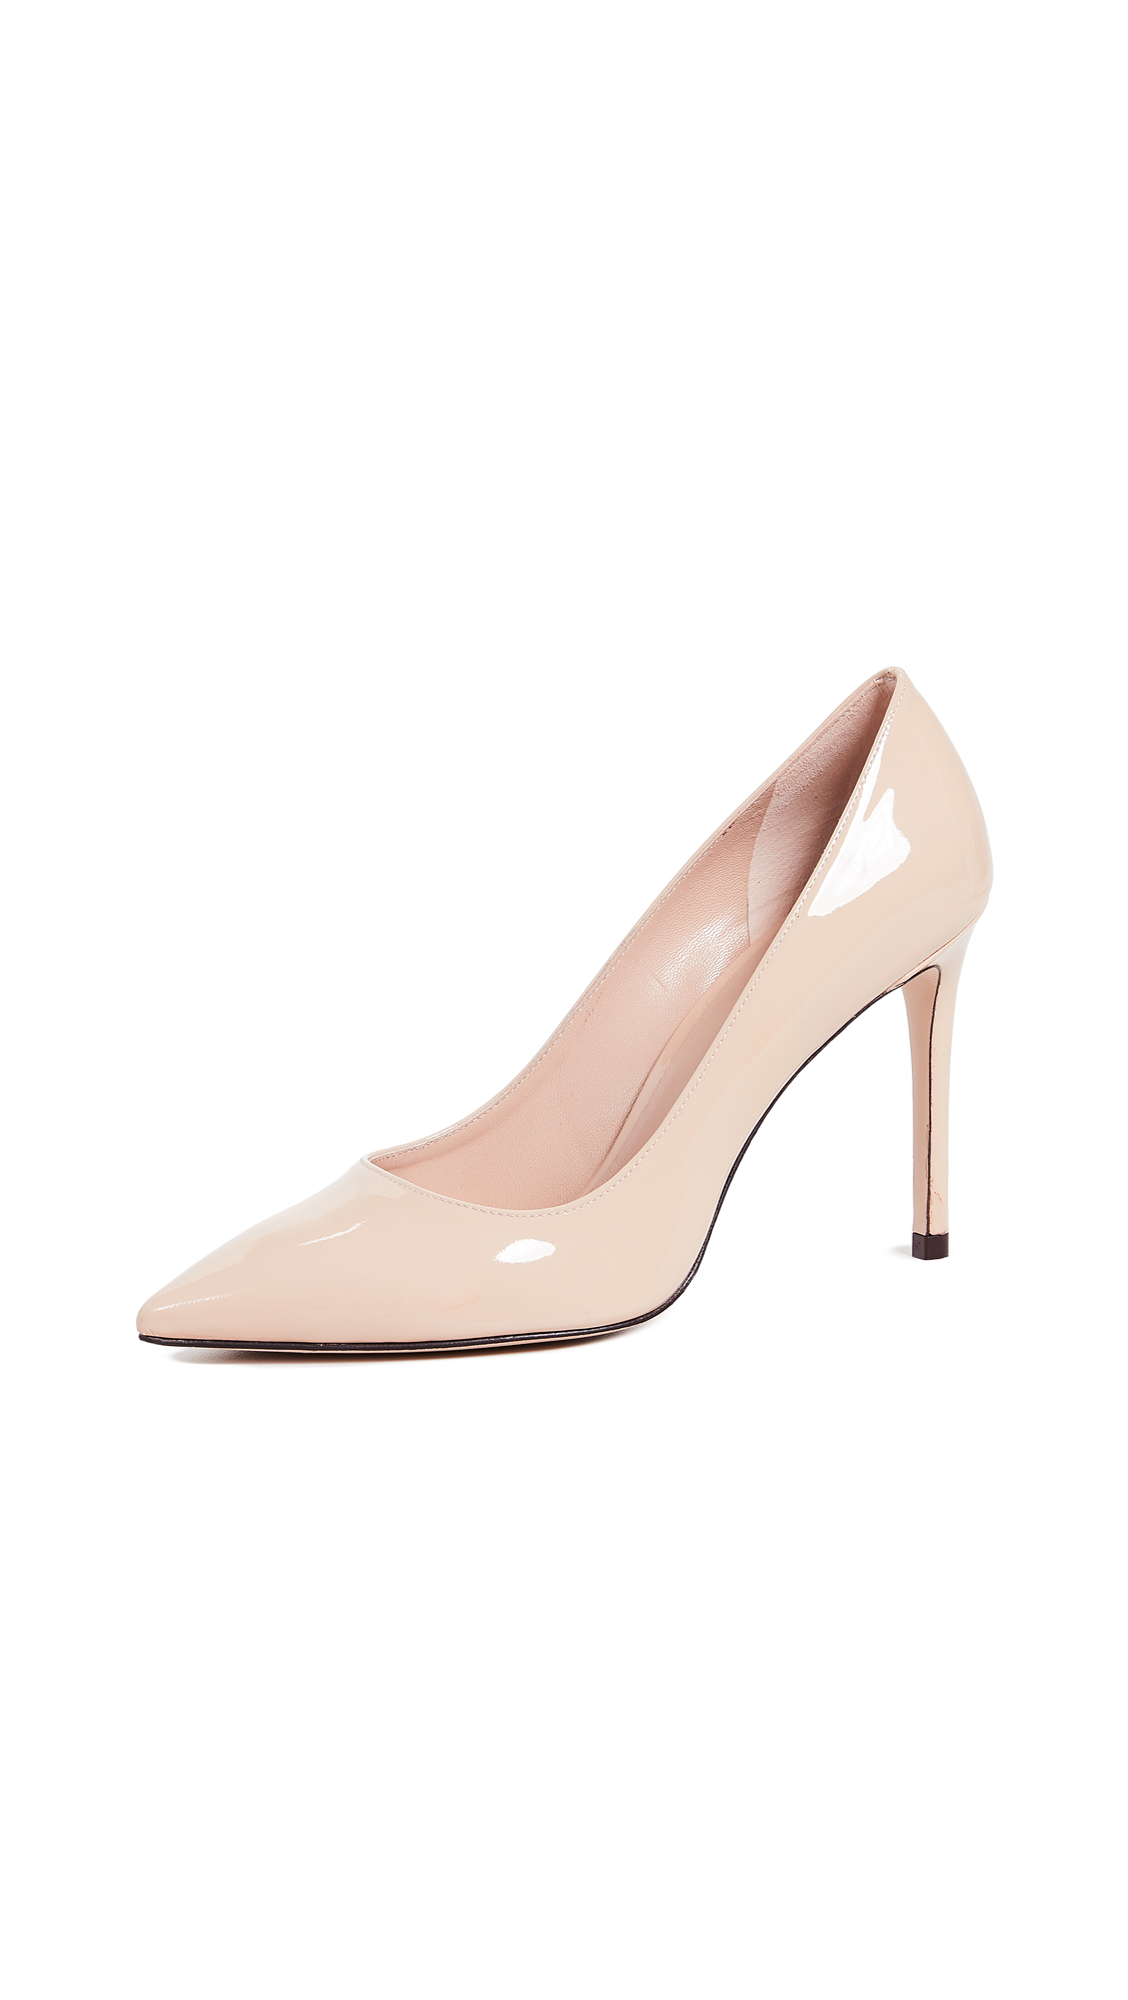 Stuart Weitzman Leigh 95mm Pumps - Cafe